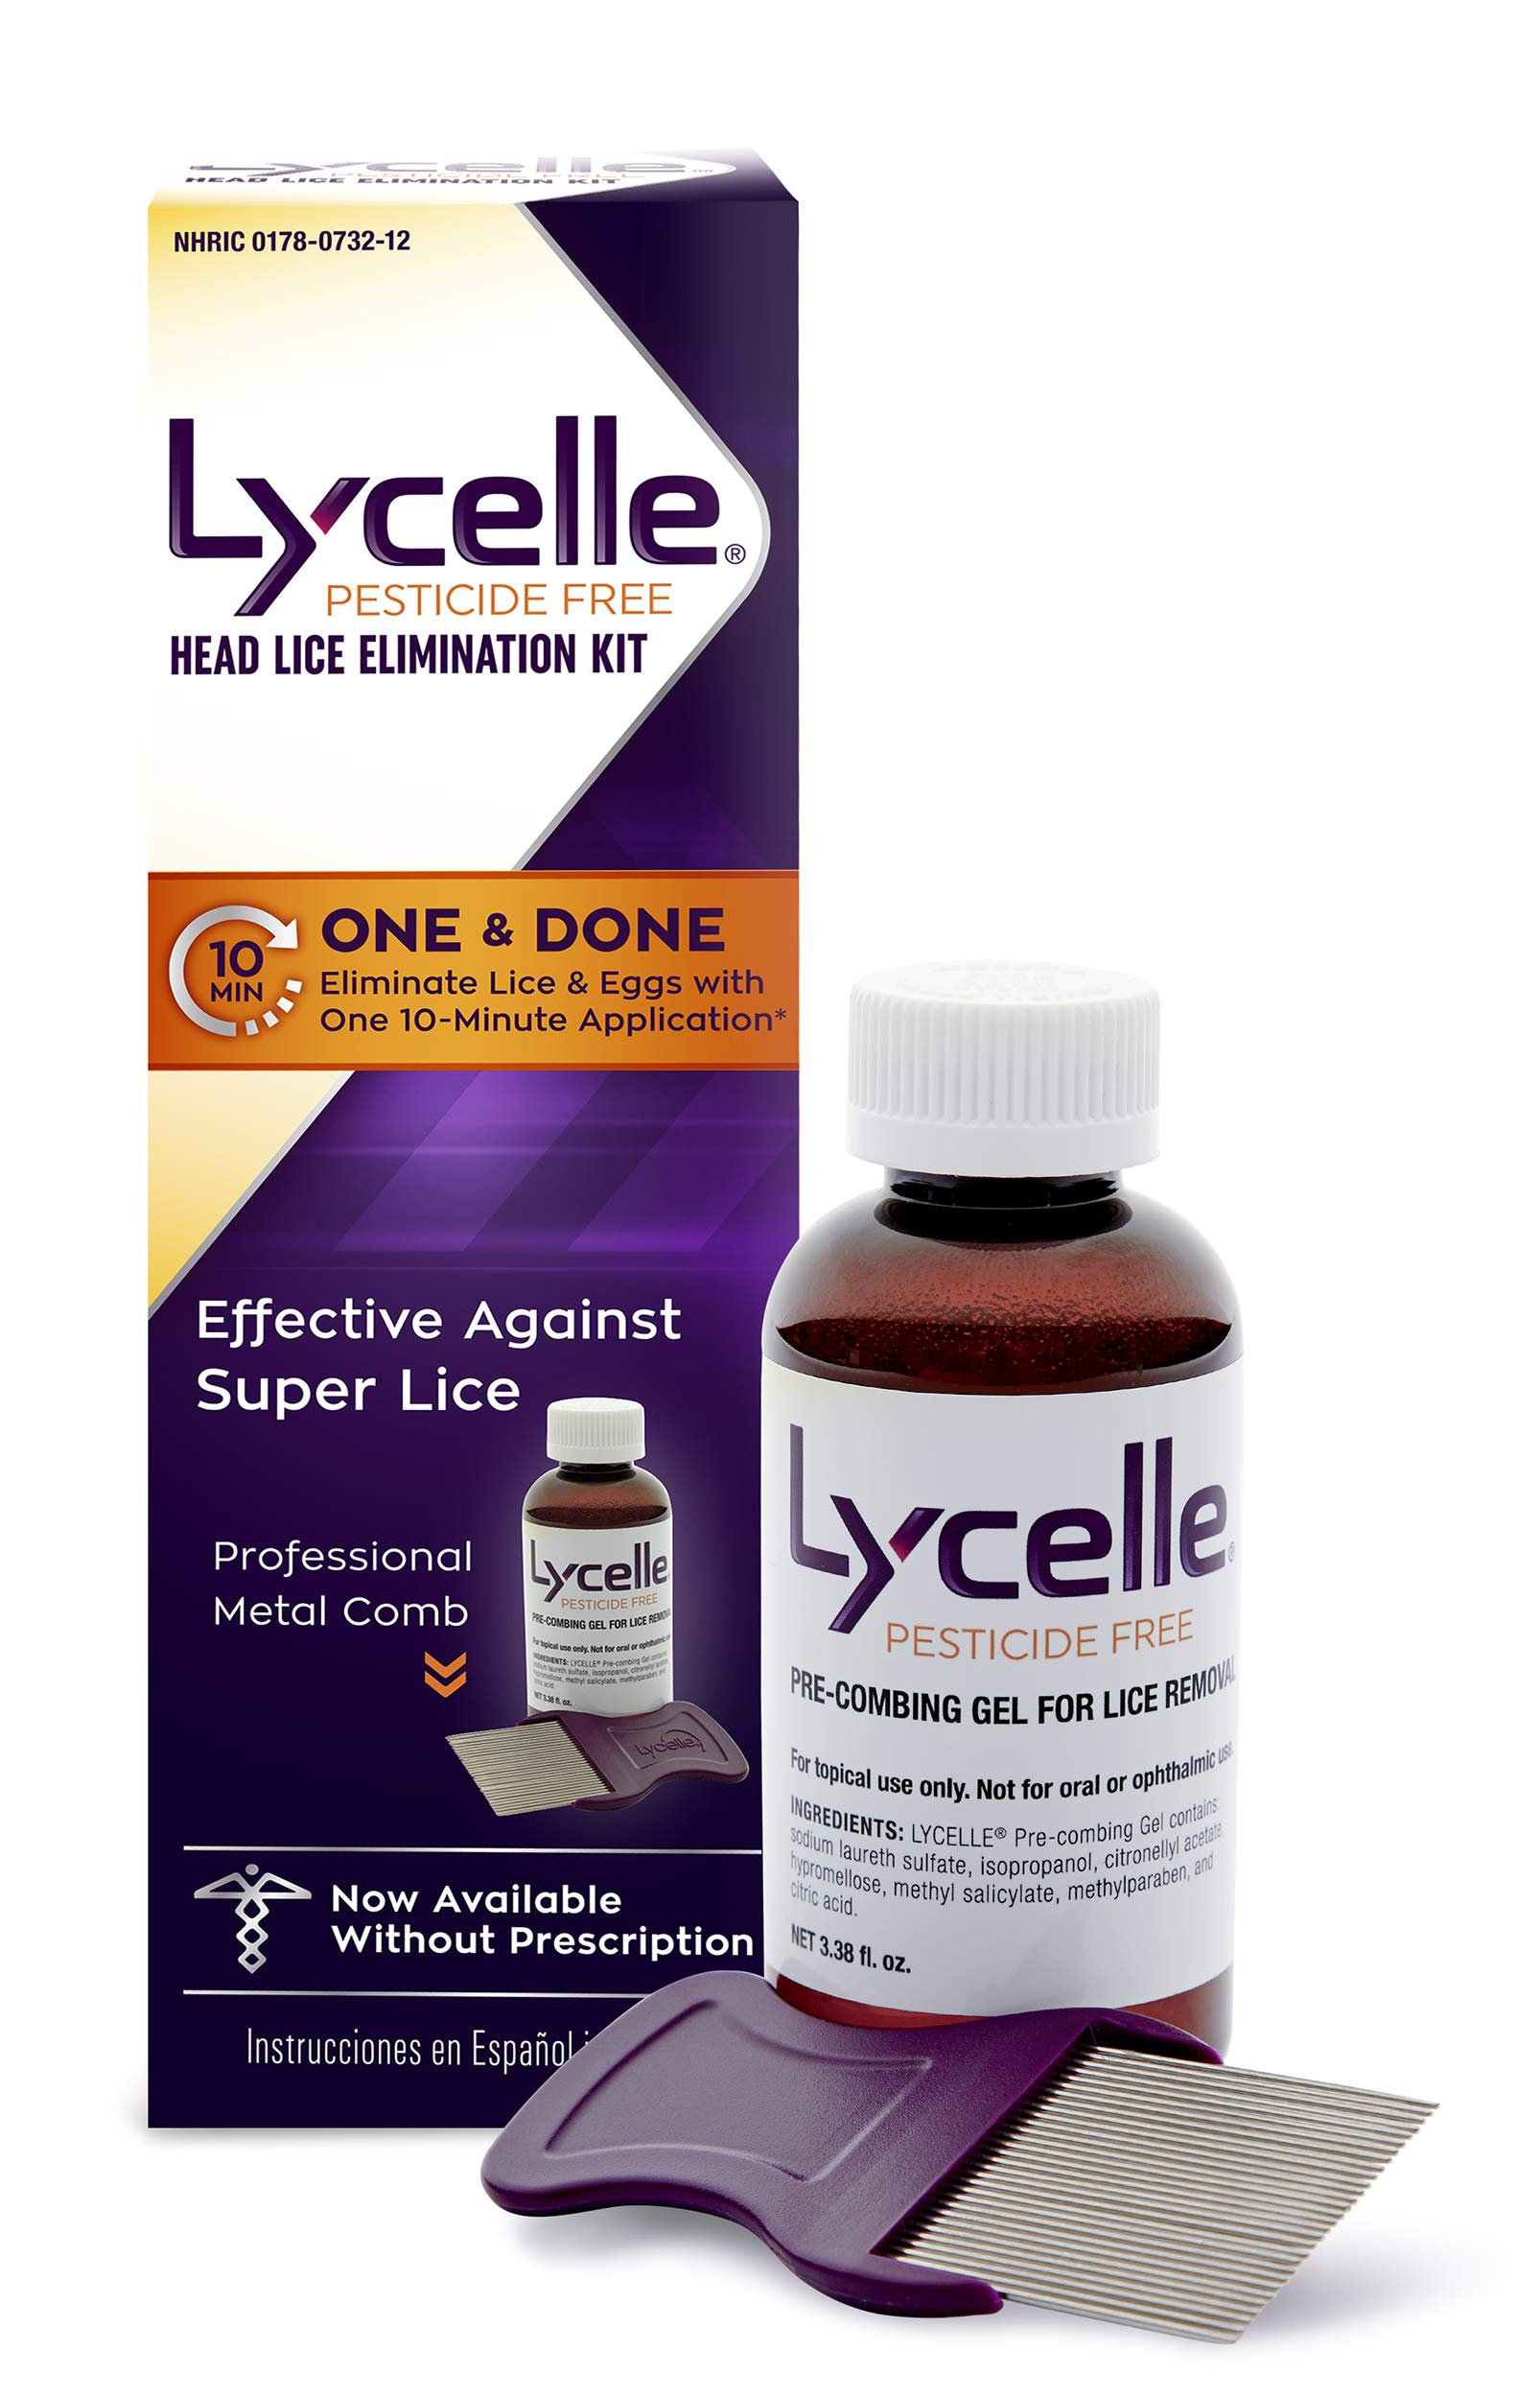 Lycelle Head Lice Removal Kit, Pesticide Free, 3.38 Oz by Lycelle